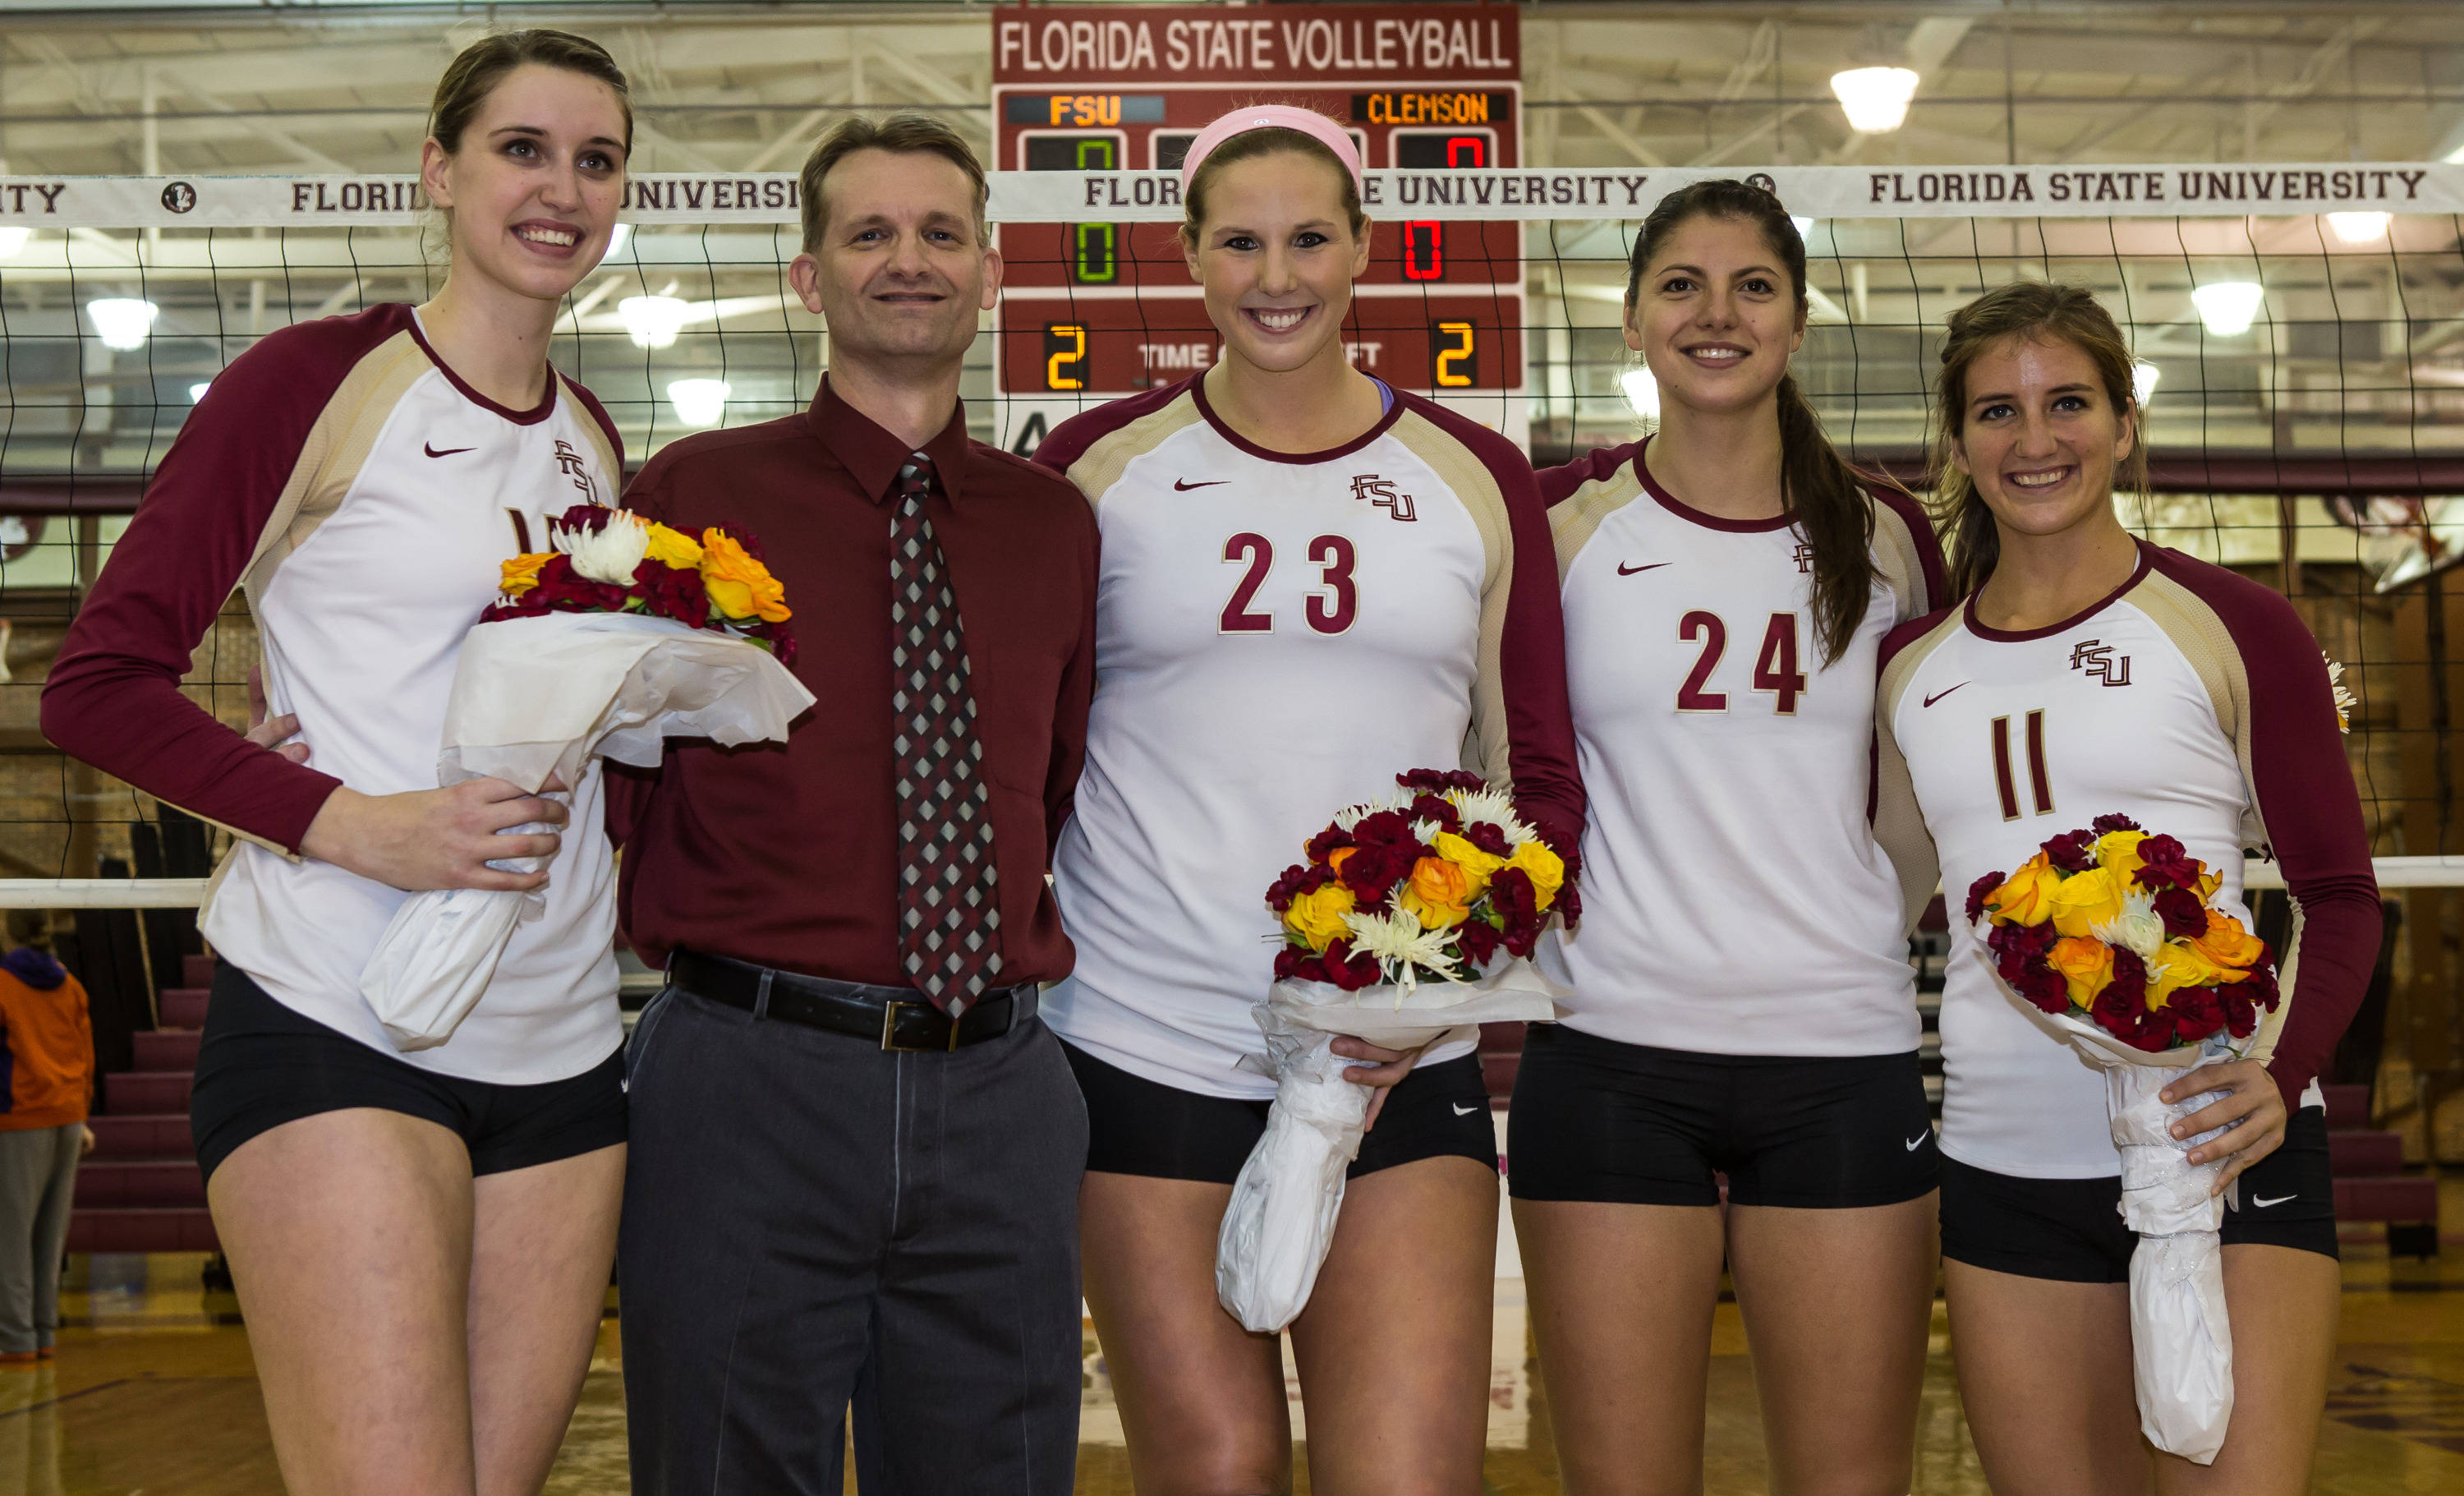 Senior Day honoring Ashley Neff (14), Chris Poole, Elise Walch (23), Olivera Medic (24), Aurora Davis (11)